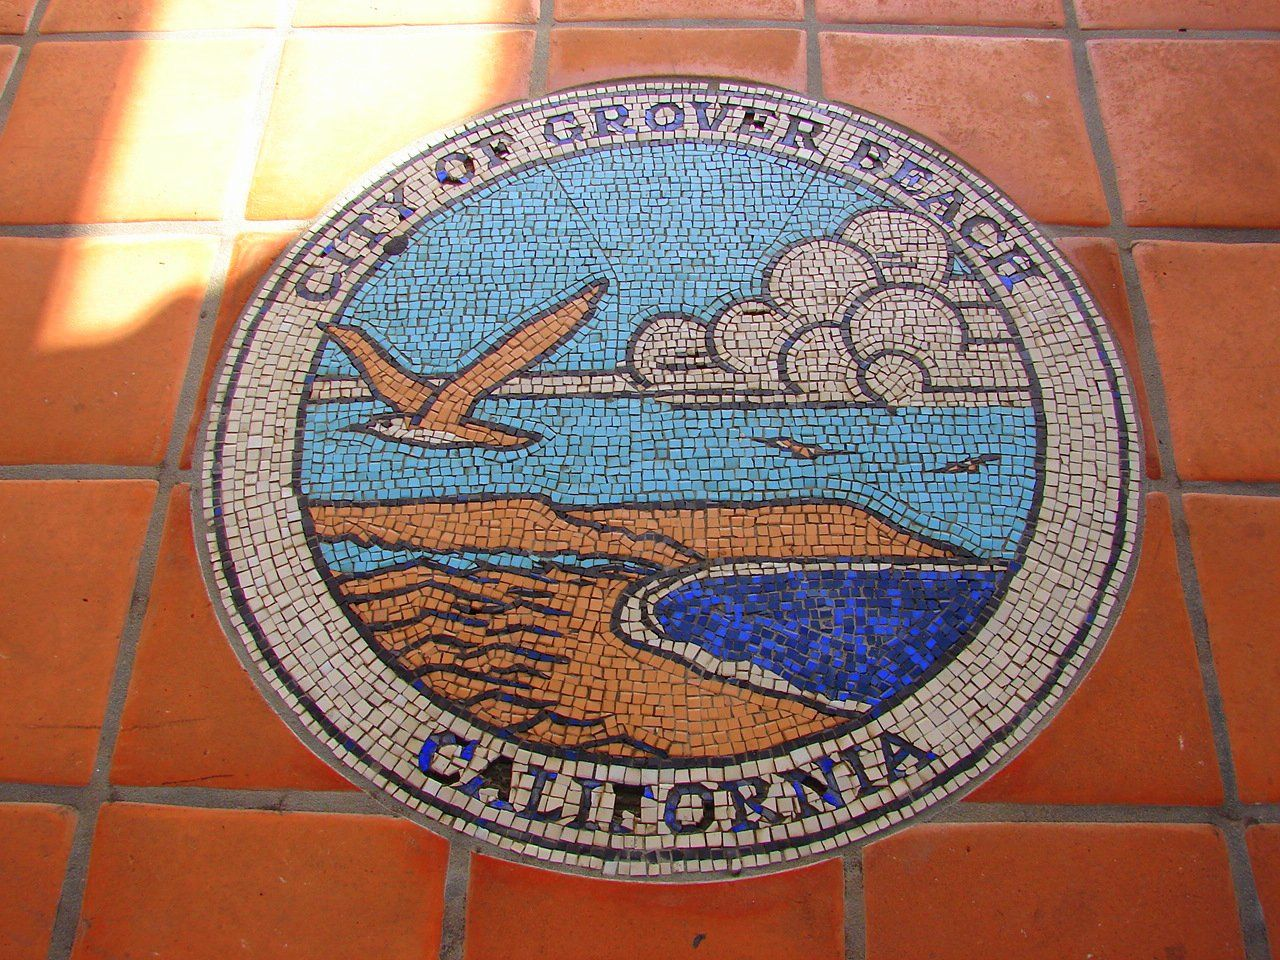 Grover Beach - But it was Grover City years ago when I lived there. :)